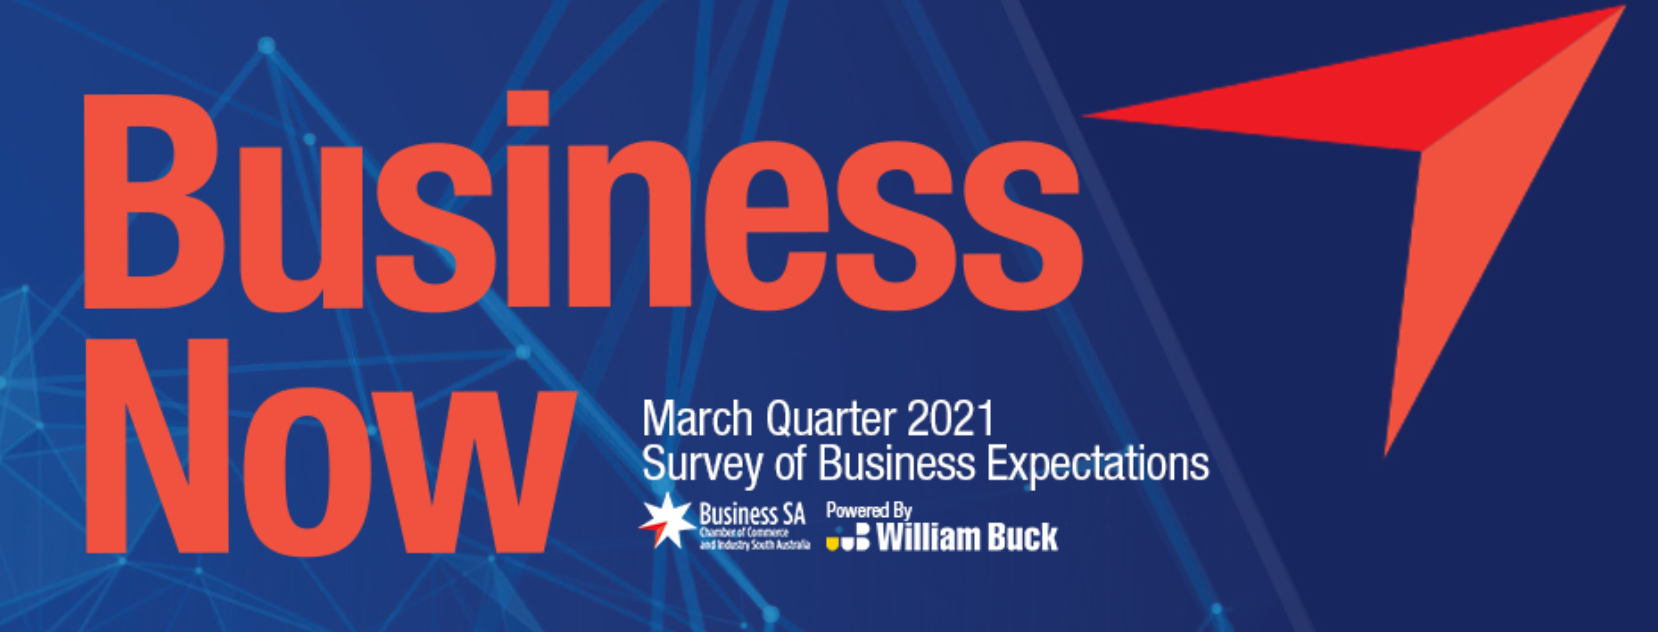 In valued partnership with William Buck, Business SA has published the Survey of Business Expectations every quarter for almost 40 years